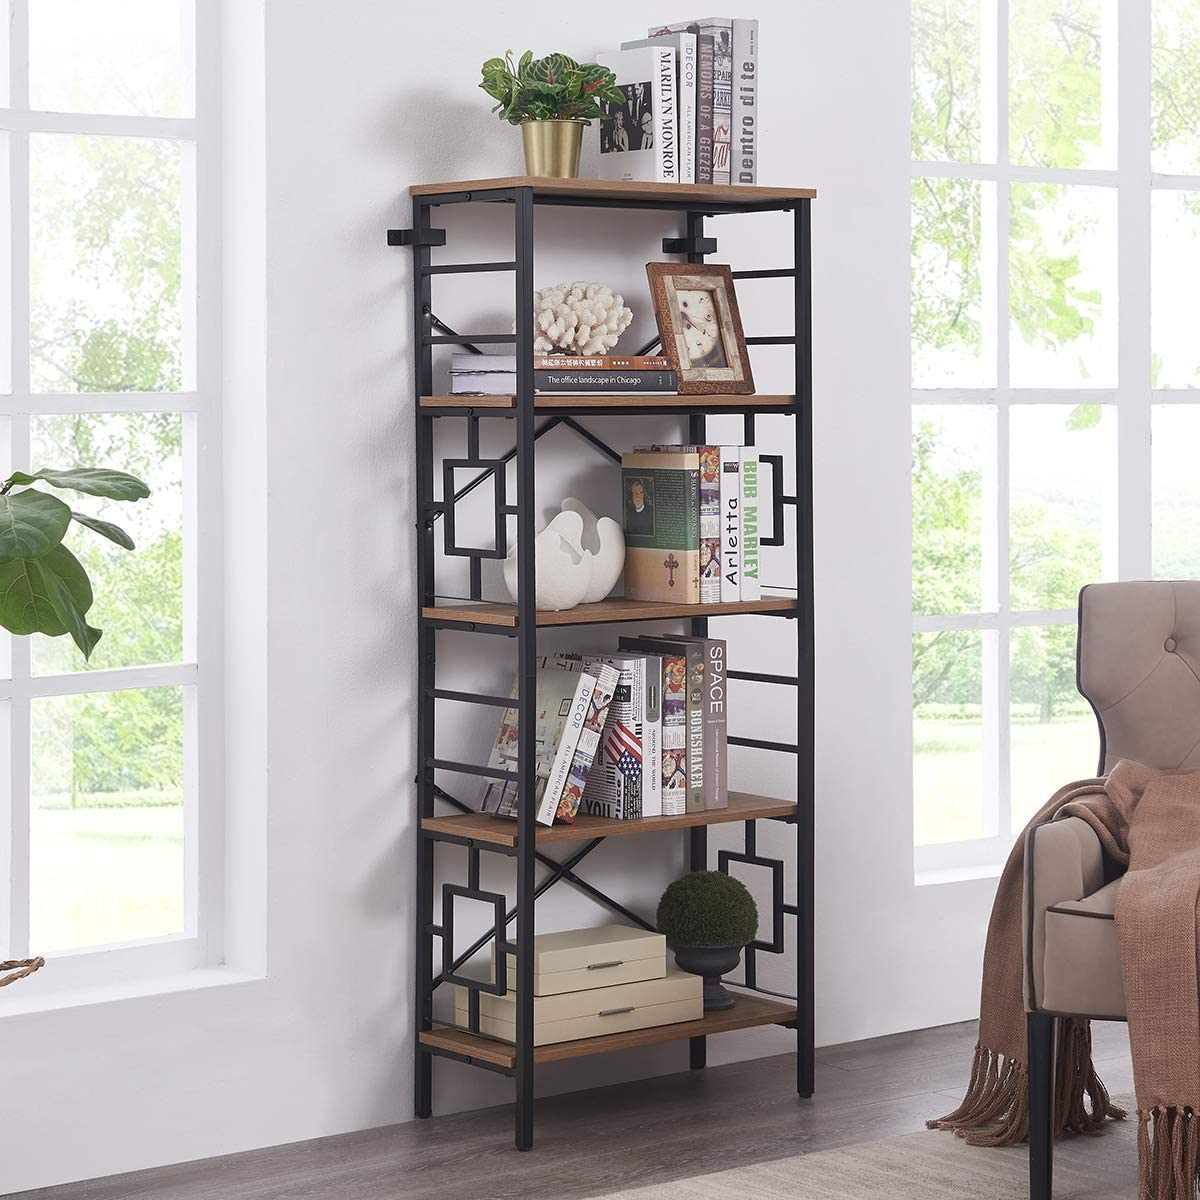 Homissue Industrial Open Bookcase, 5-Tier Tall Bookshelf Storage Display Rack for Home Office, Rustic Brown